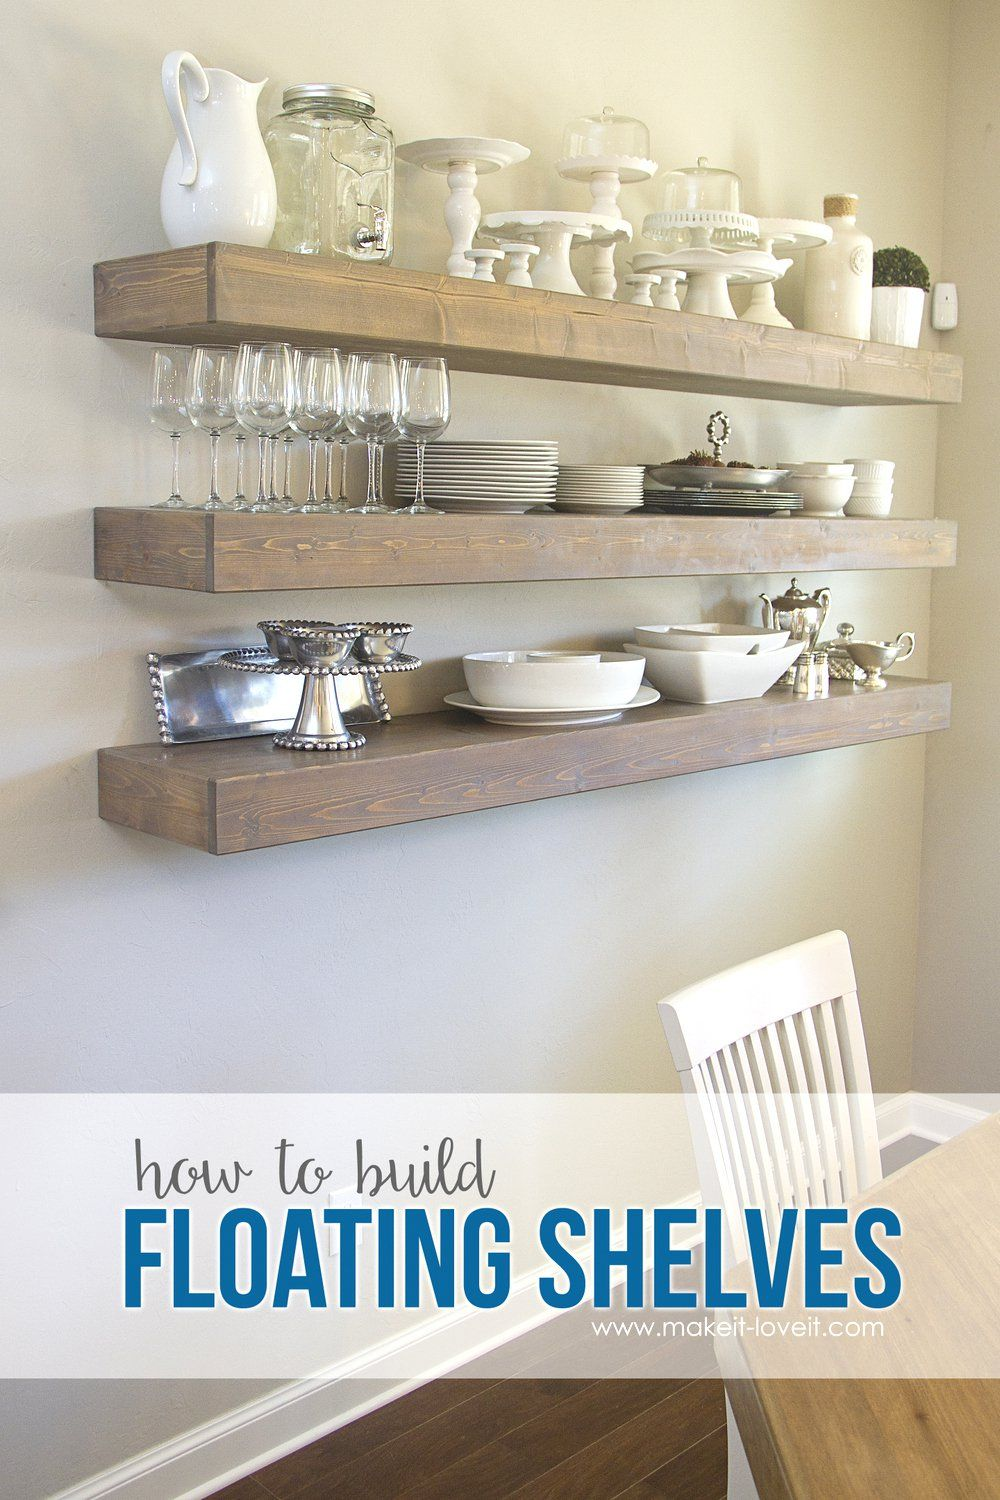 How To Build Simple Floating Shelves For Any Room In The House Unique Floating Shelves Dining Room Design Decoration